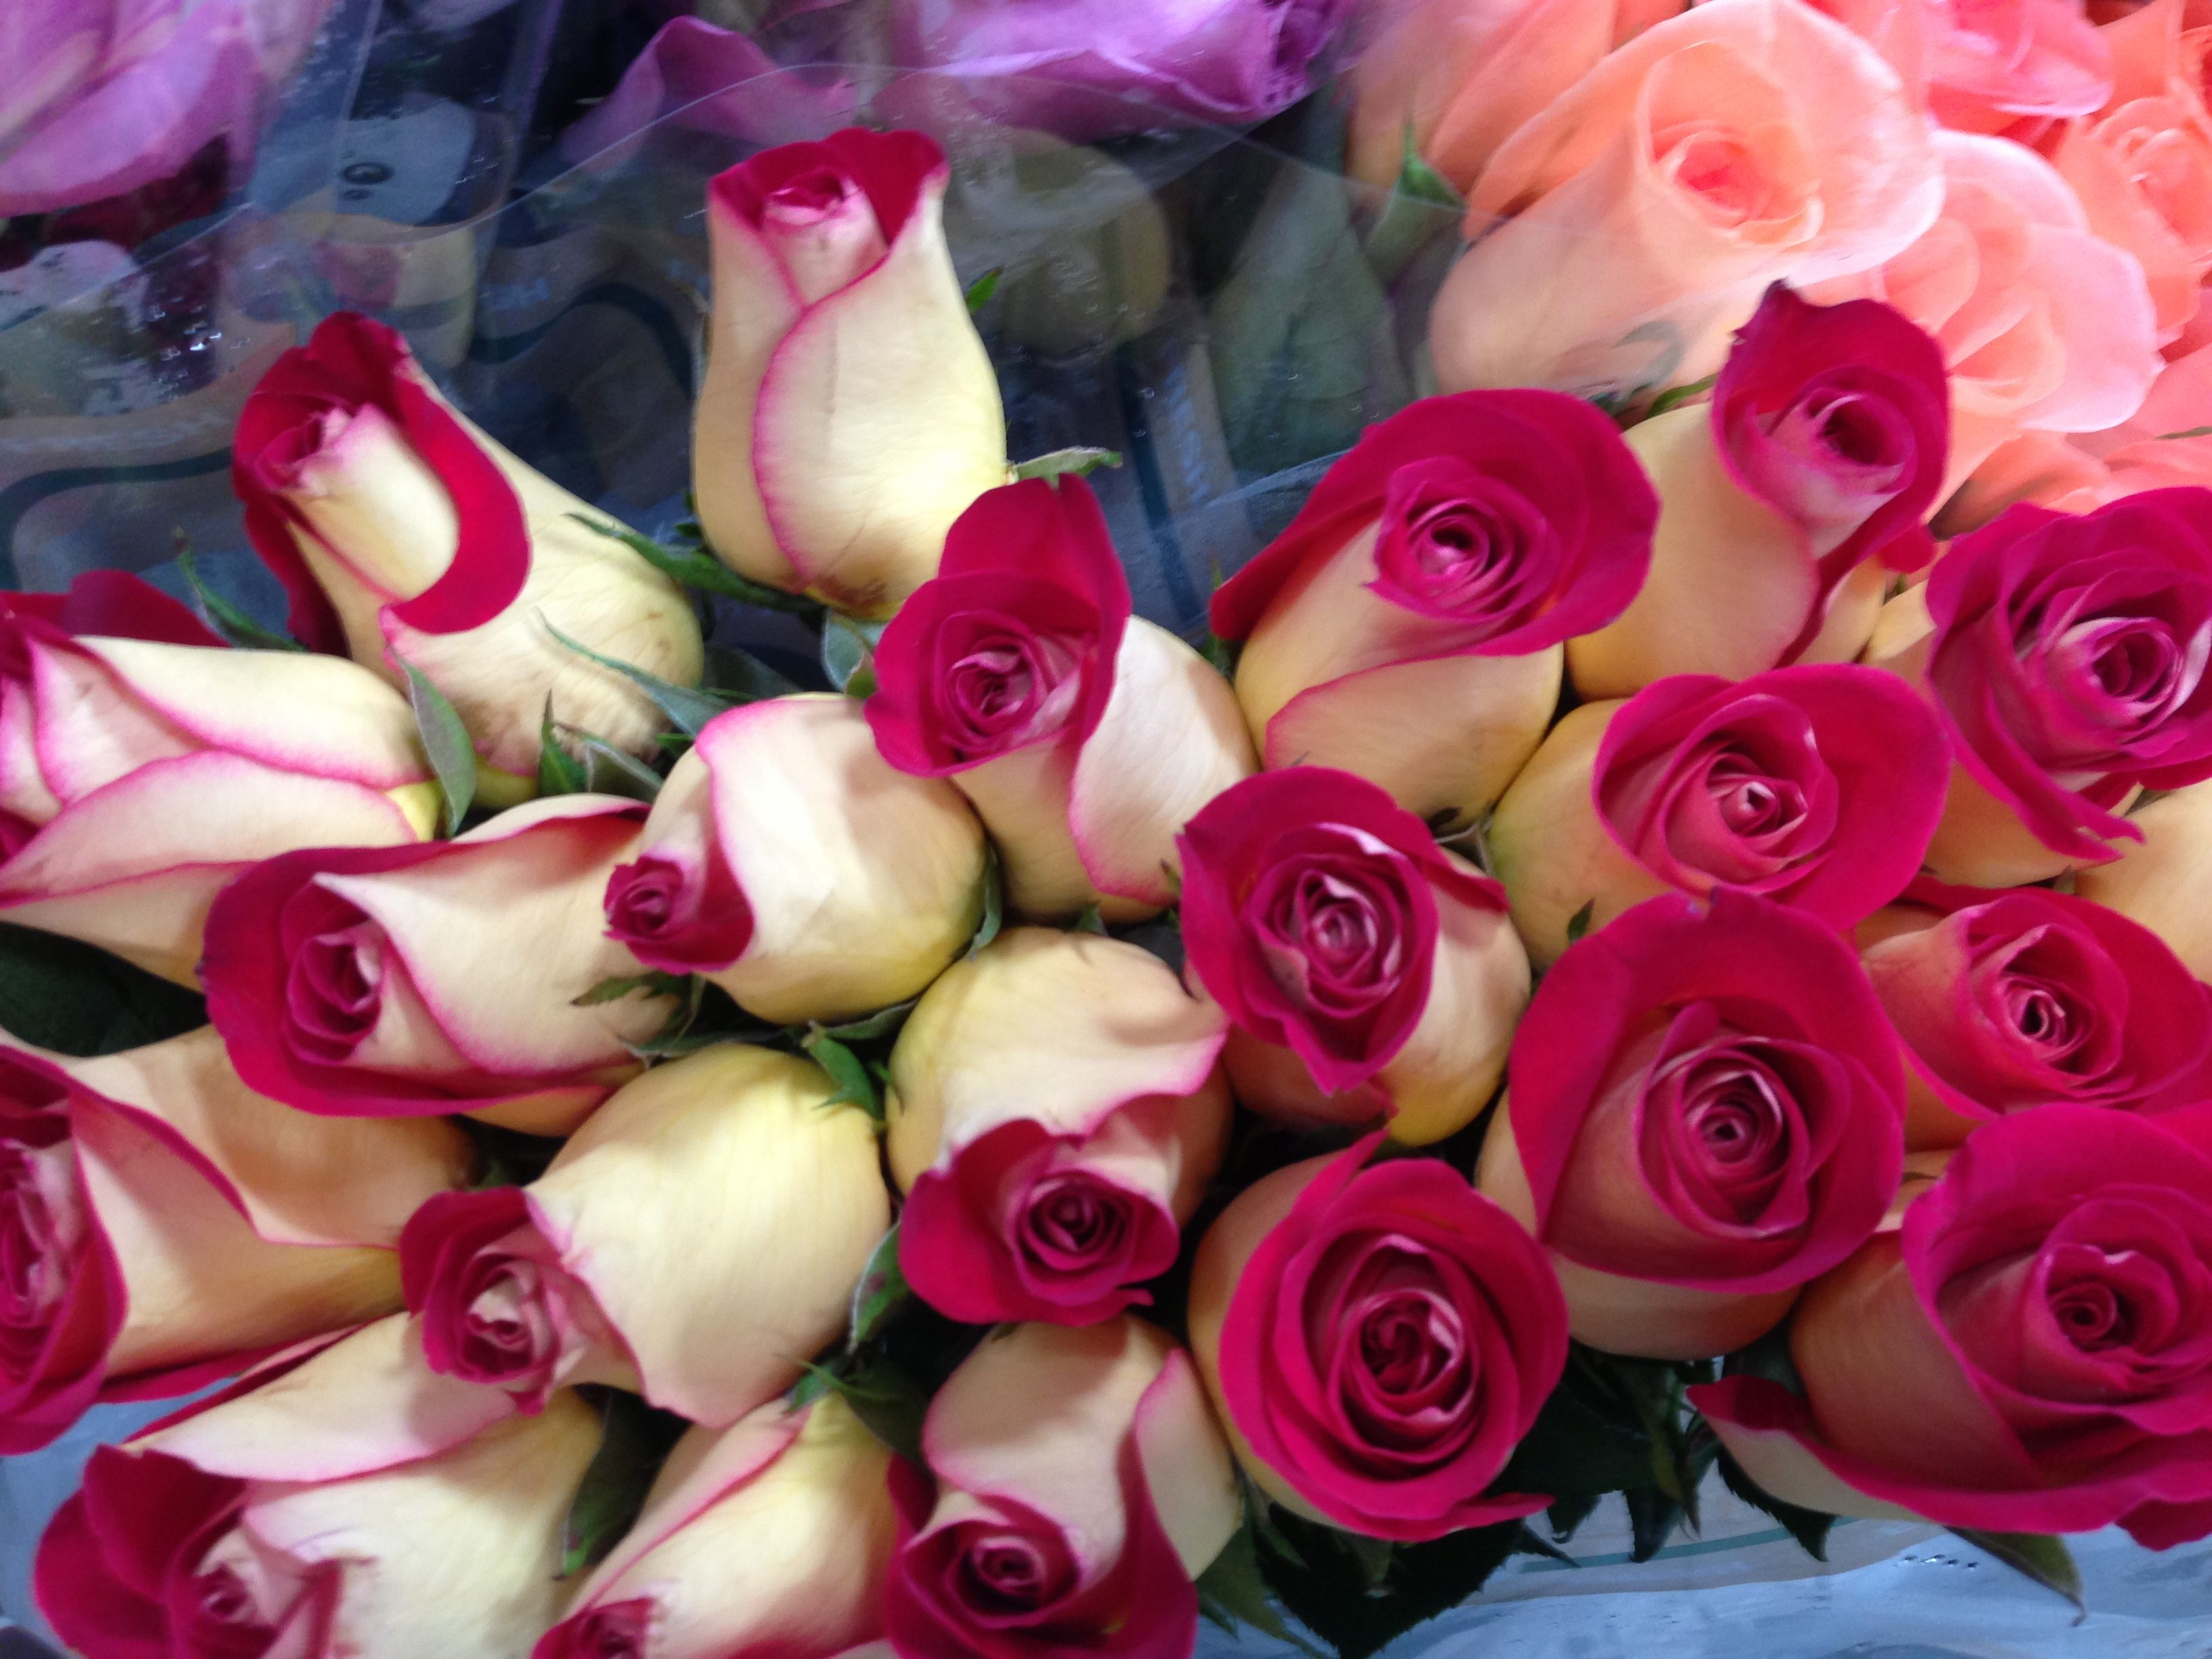 Red tipped #Roses at #Louisville Costco - 16.99 for TWO dozen. Gorgeous! Special orders for events welcome, too!